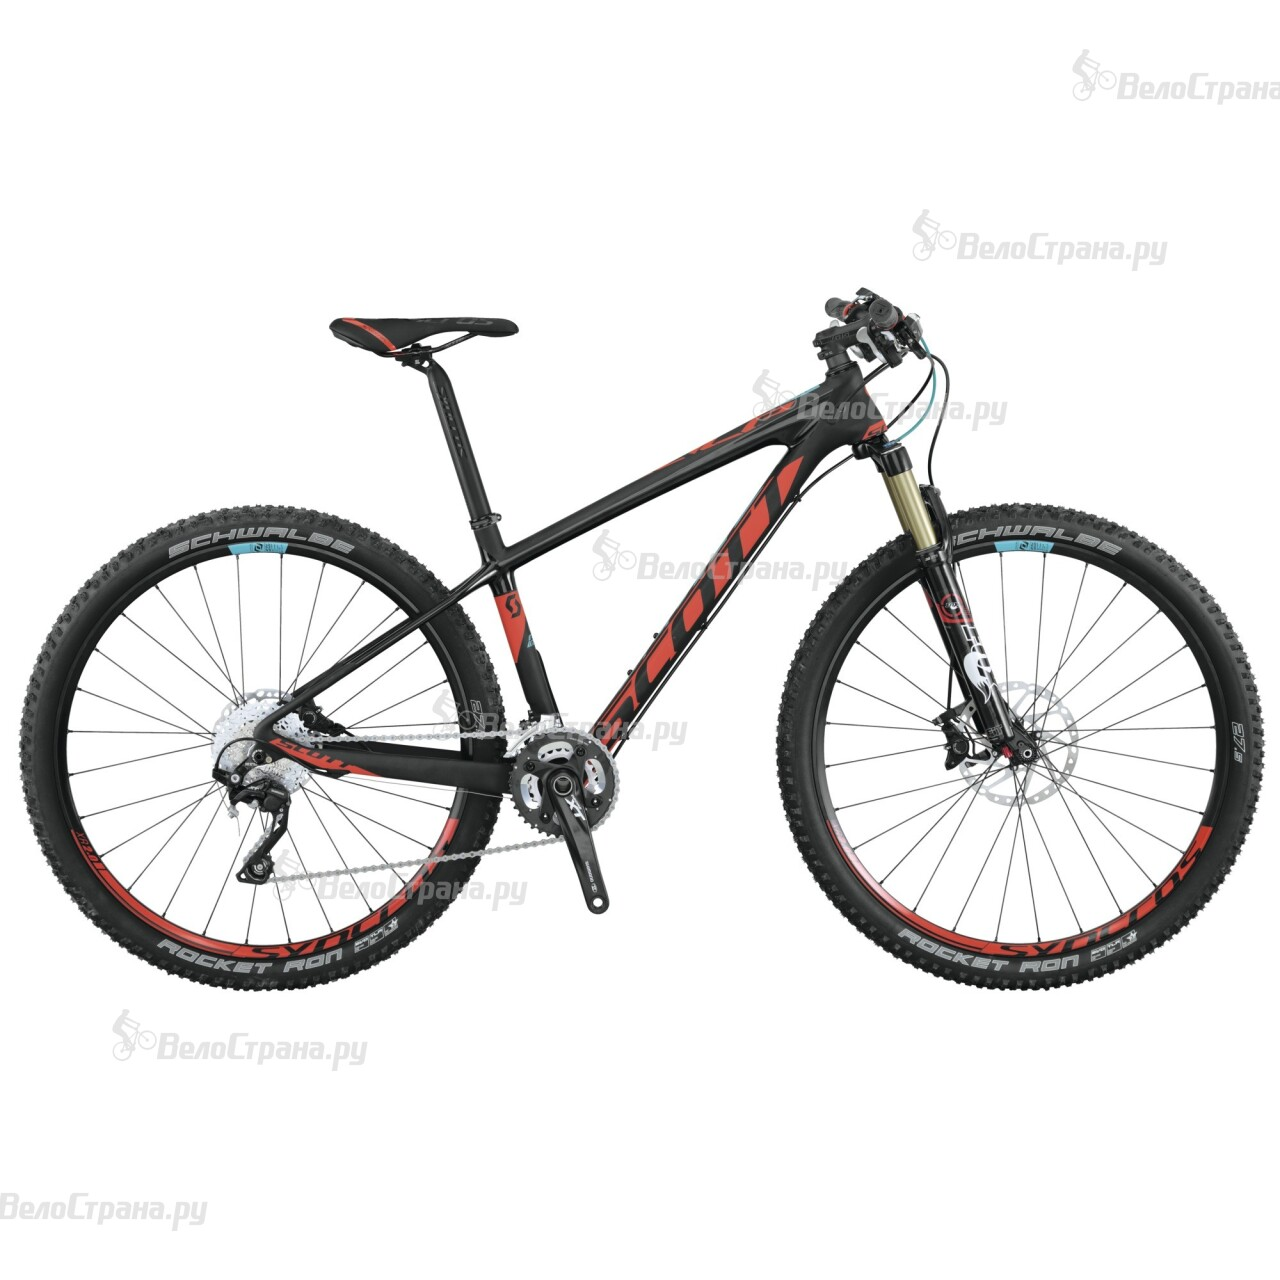 Велосипед Scott Contessa Spark 700 RC (2015)  велосипед scott contessa spark 700 rc 2016